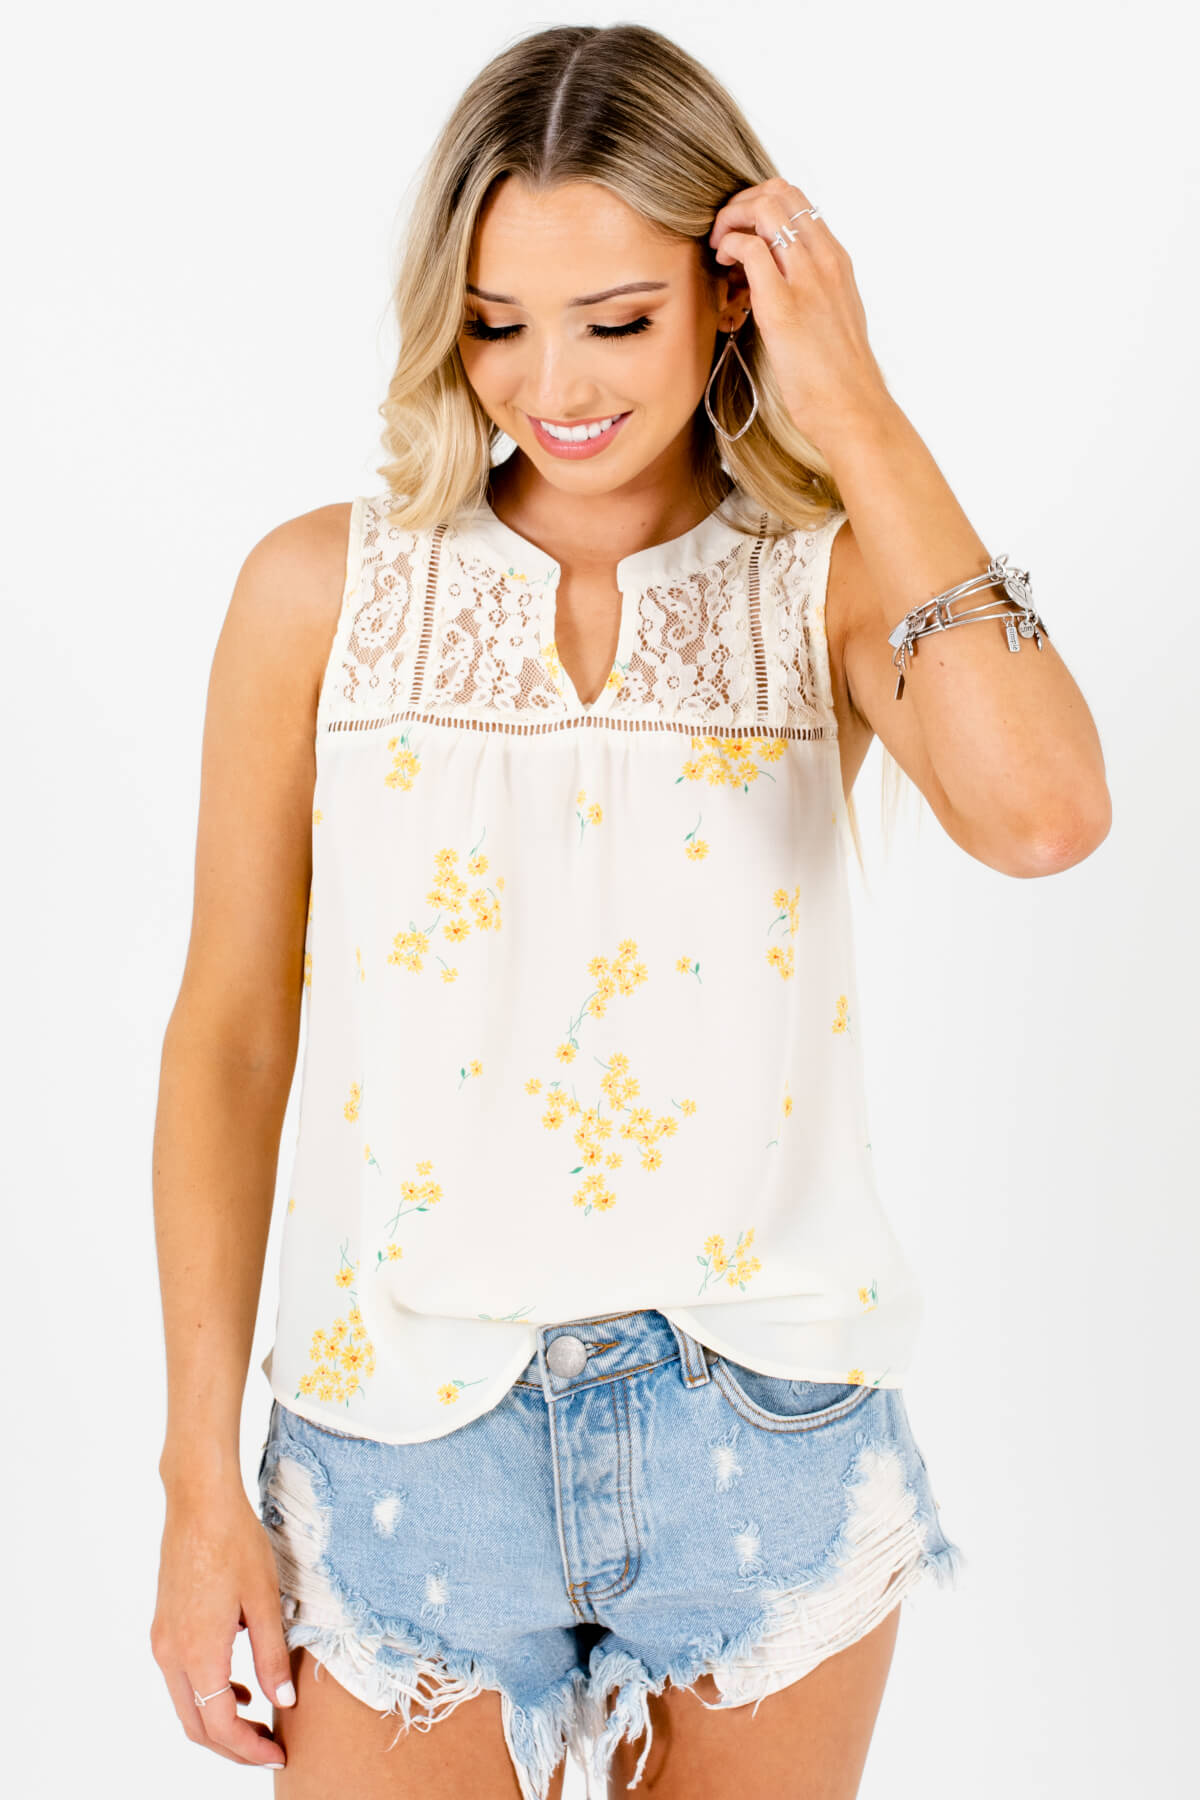 Cream Floral Patterned Boutique Tank Tops for Women